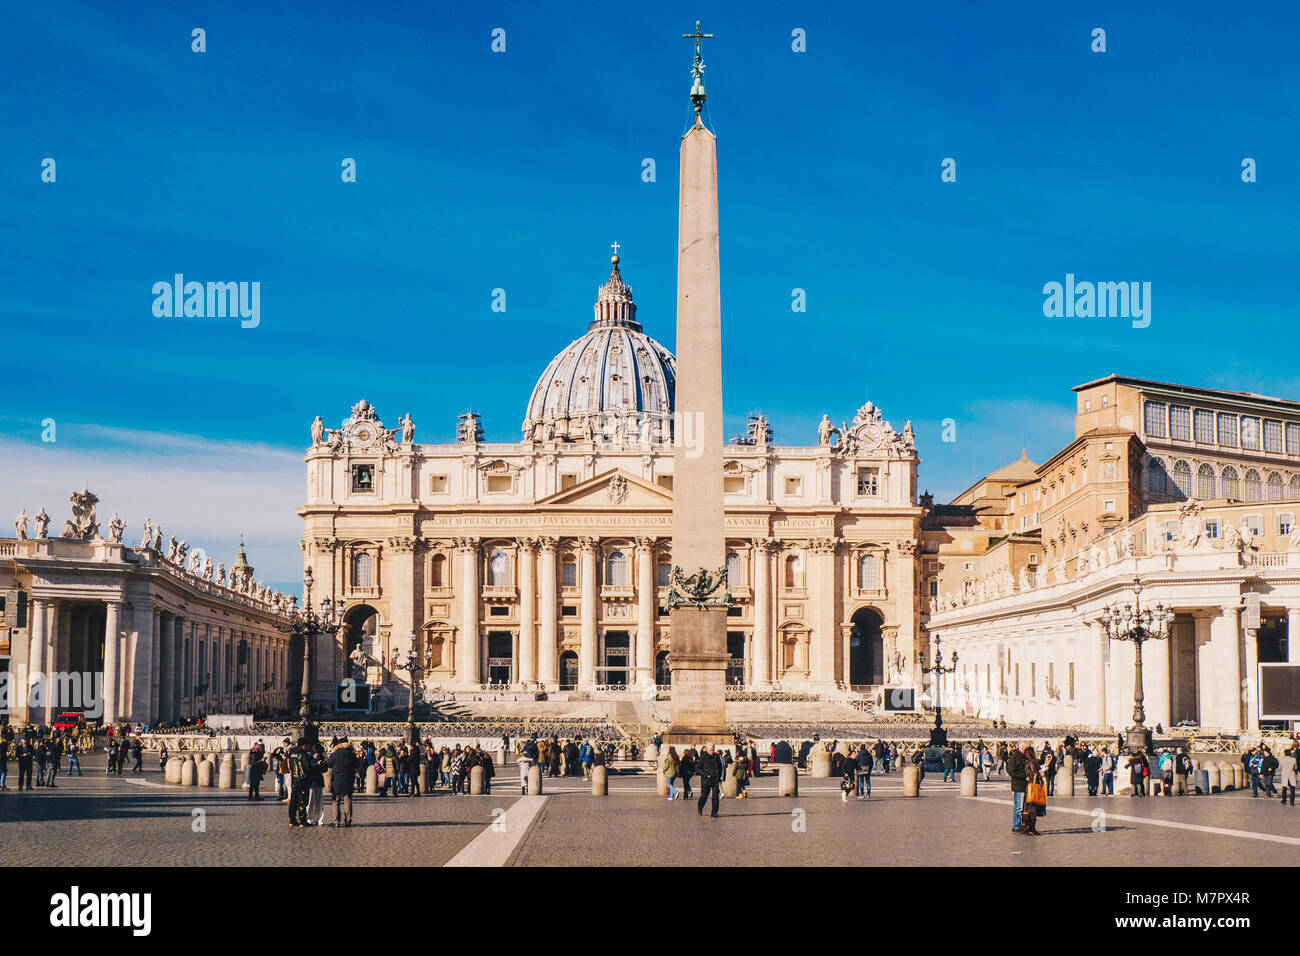 St. Peter's square and Saint Peter's Basilica in the Vatican City in Rome, Italy - Stock Image